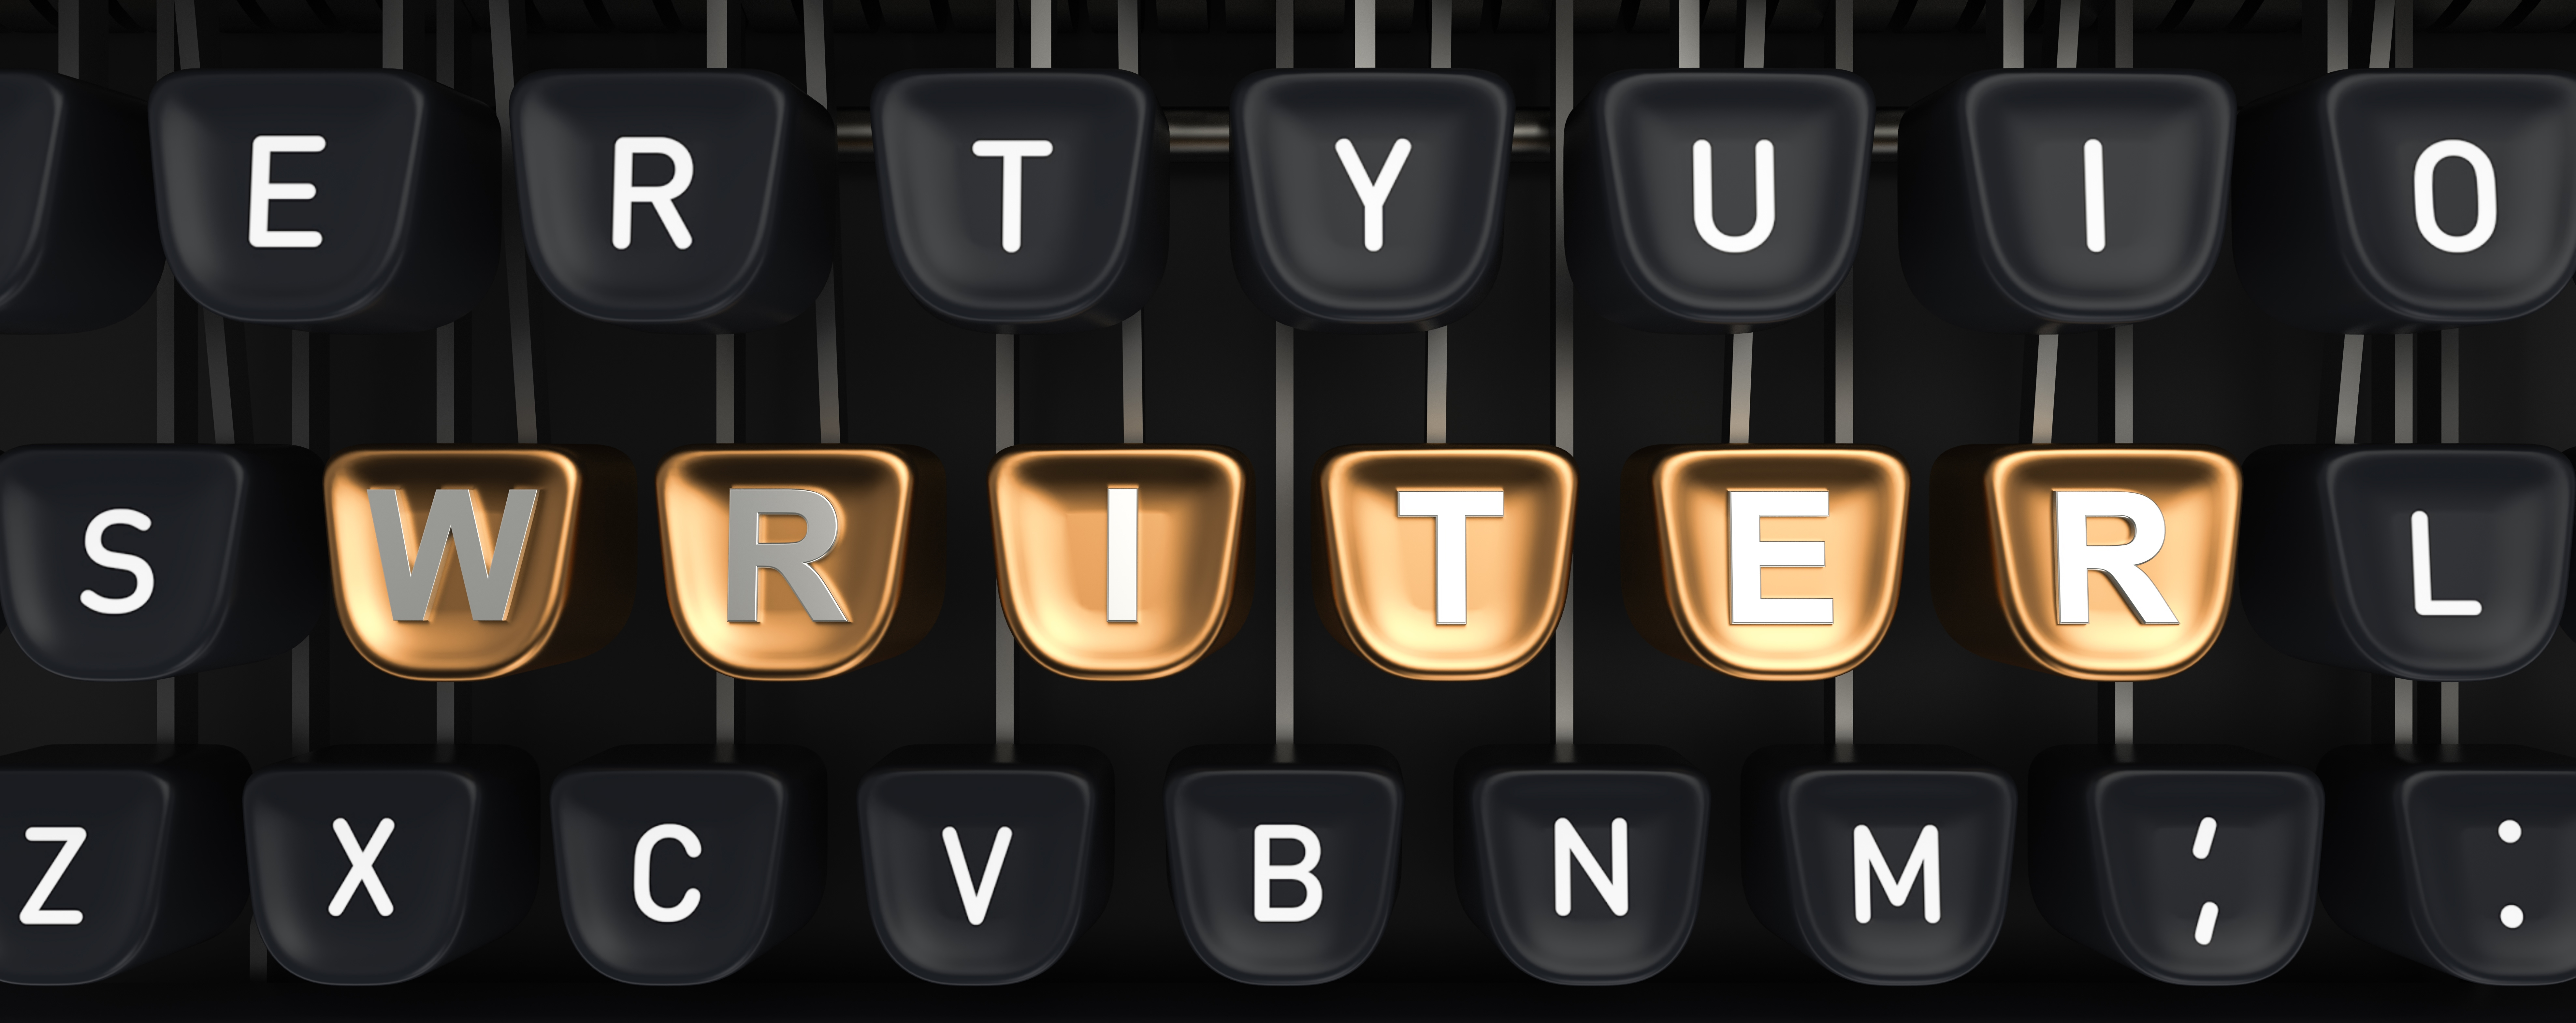 Typewriter with gold buttons in a row, assembling WRITER word